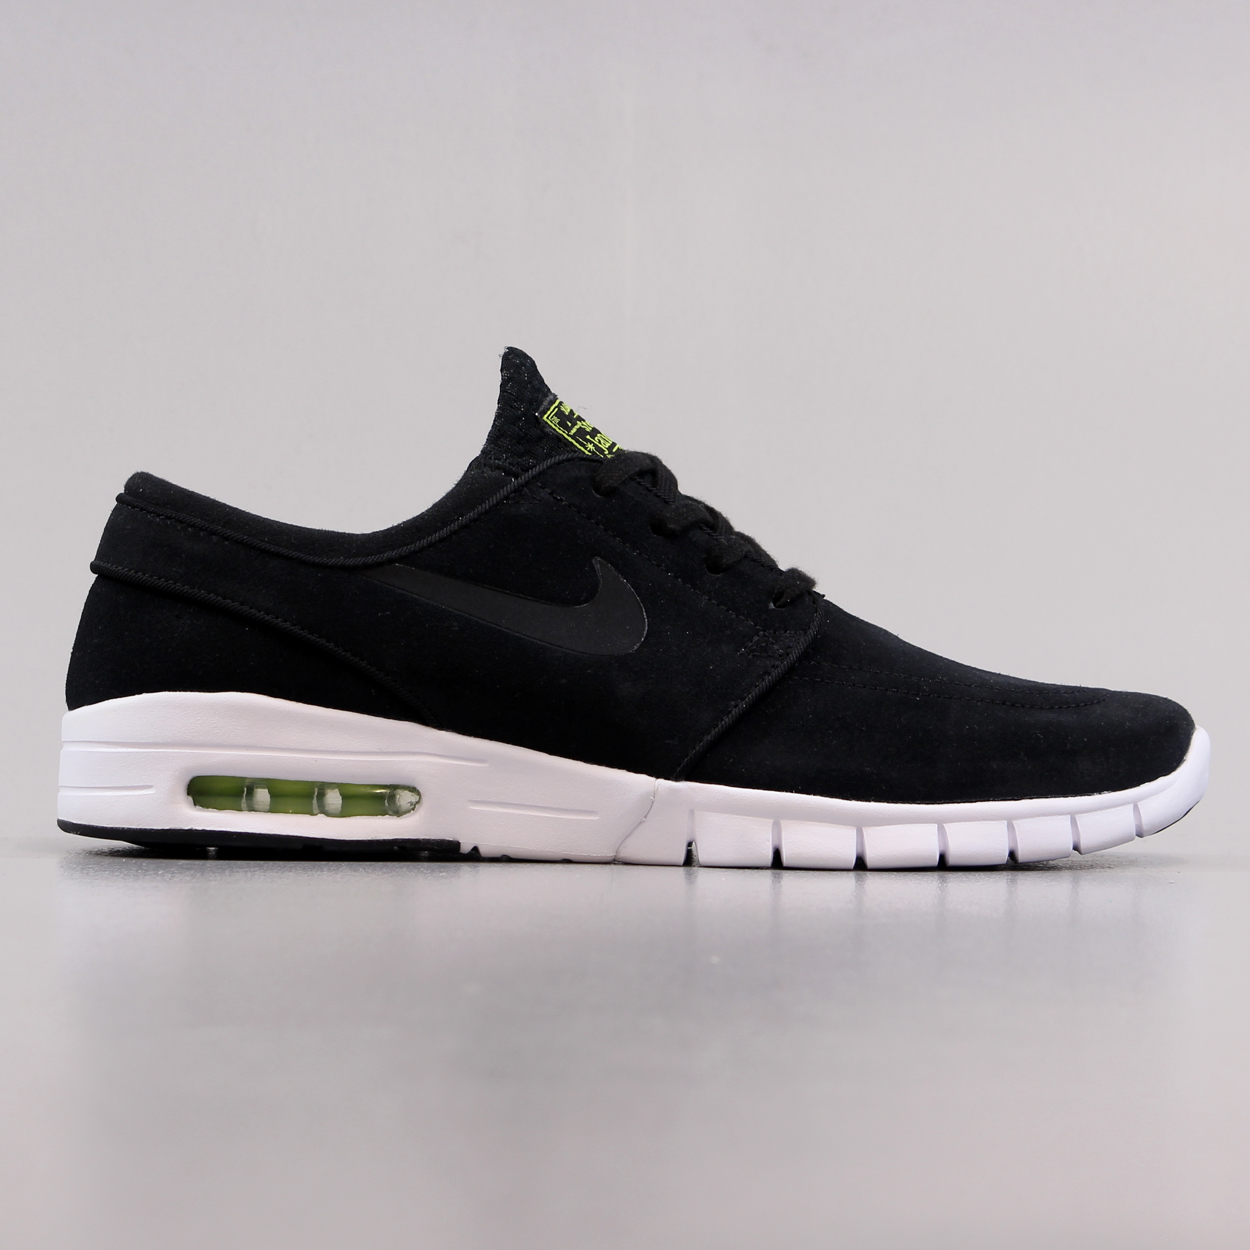 709462d6a669 Nike SB Stefan Janoski Max L Suede Trainers Black Green White £67.50